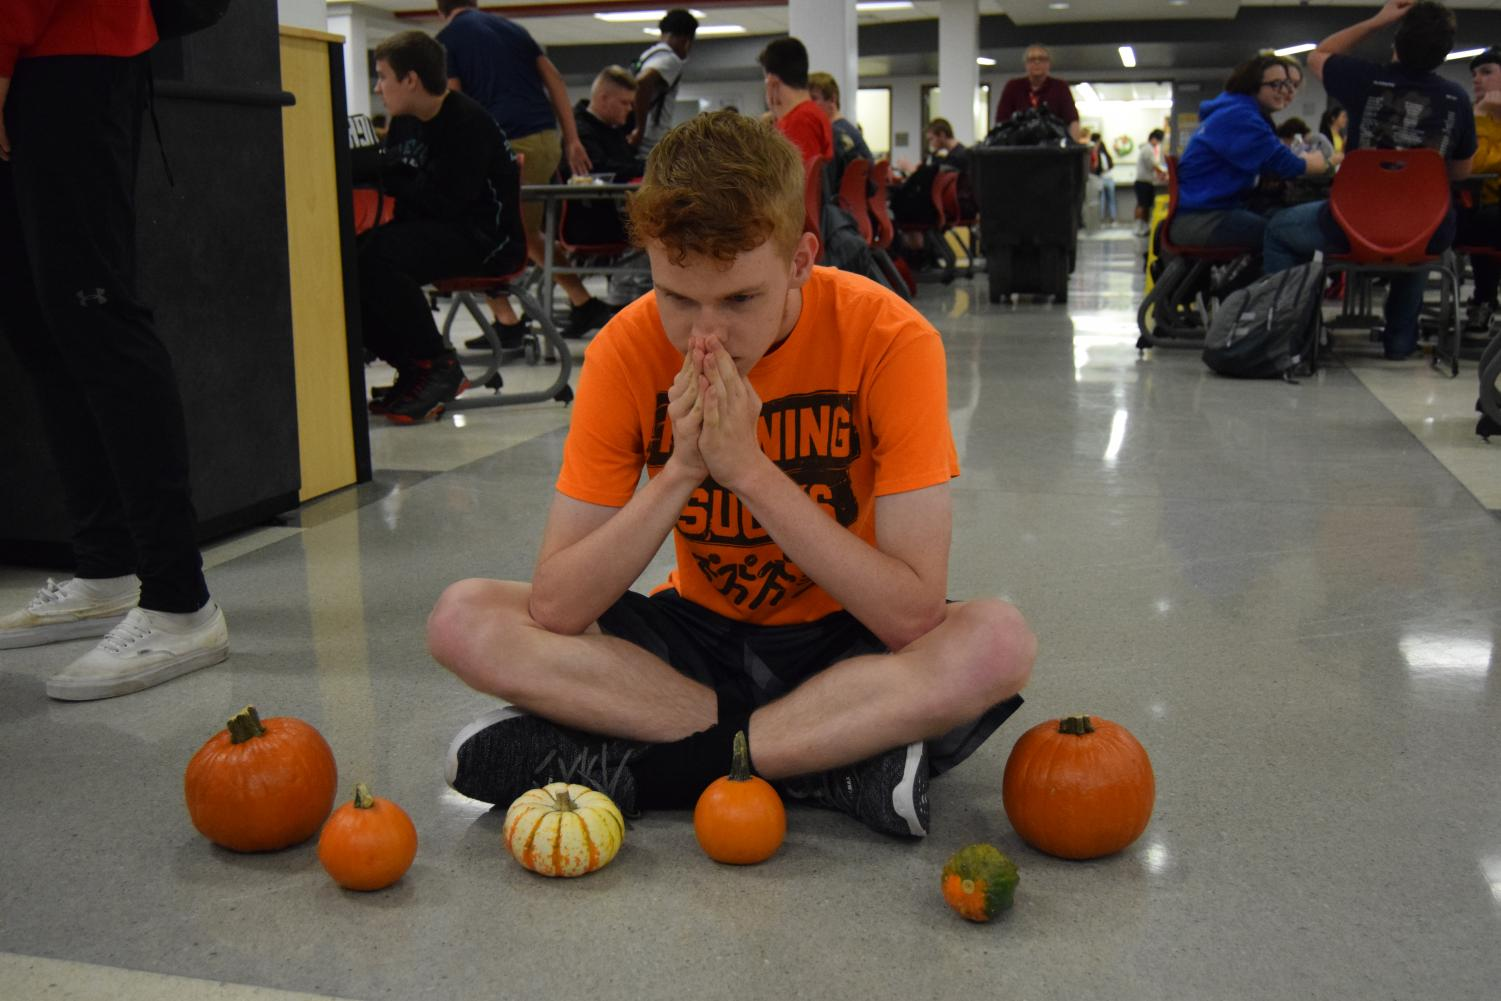 Junior Pam Grady sits as he is surrounded by pumpkins